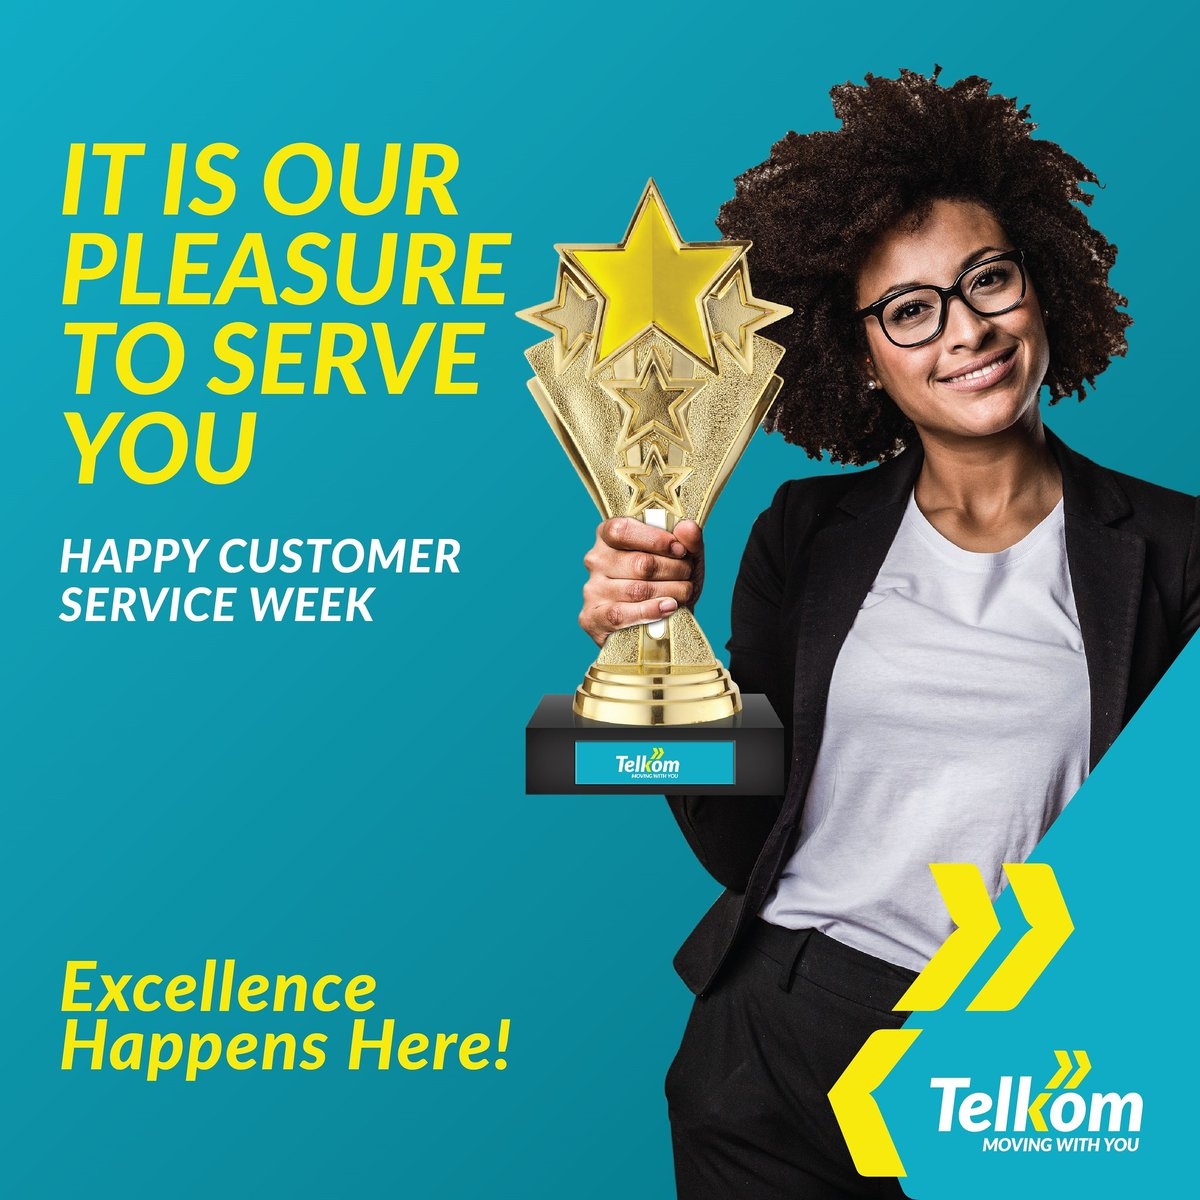 It's #CustomerServiceWeek! The week where we appreciate all our lovely customers! 😍 It's our pleasure to always serve you and this week, we've got goodies to say thank you! 🙌 So be on the look out! 🔥😎